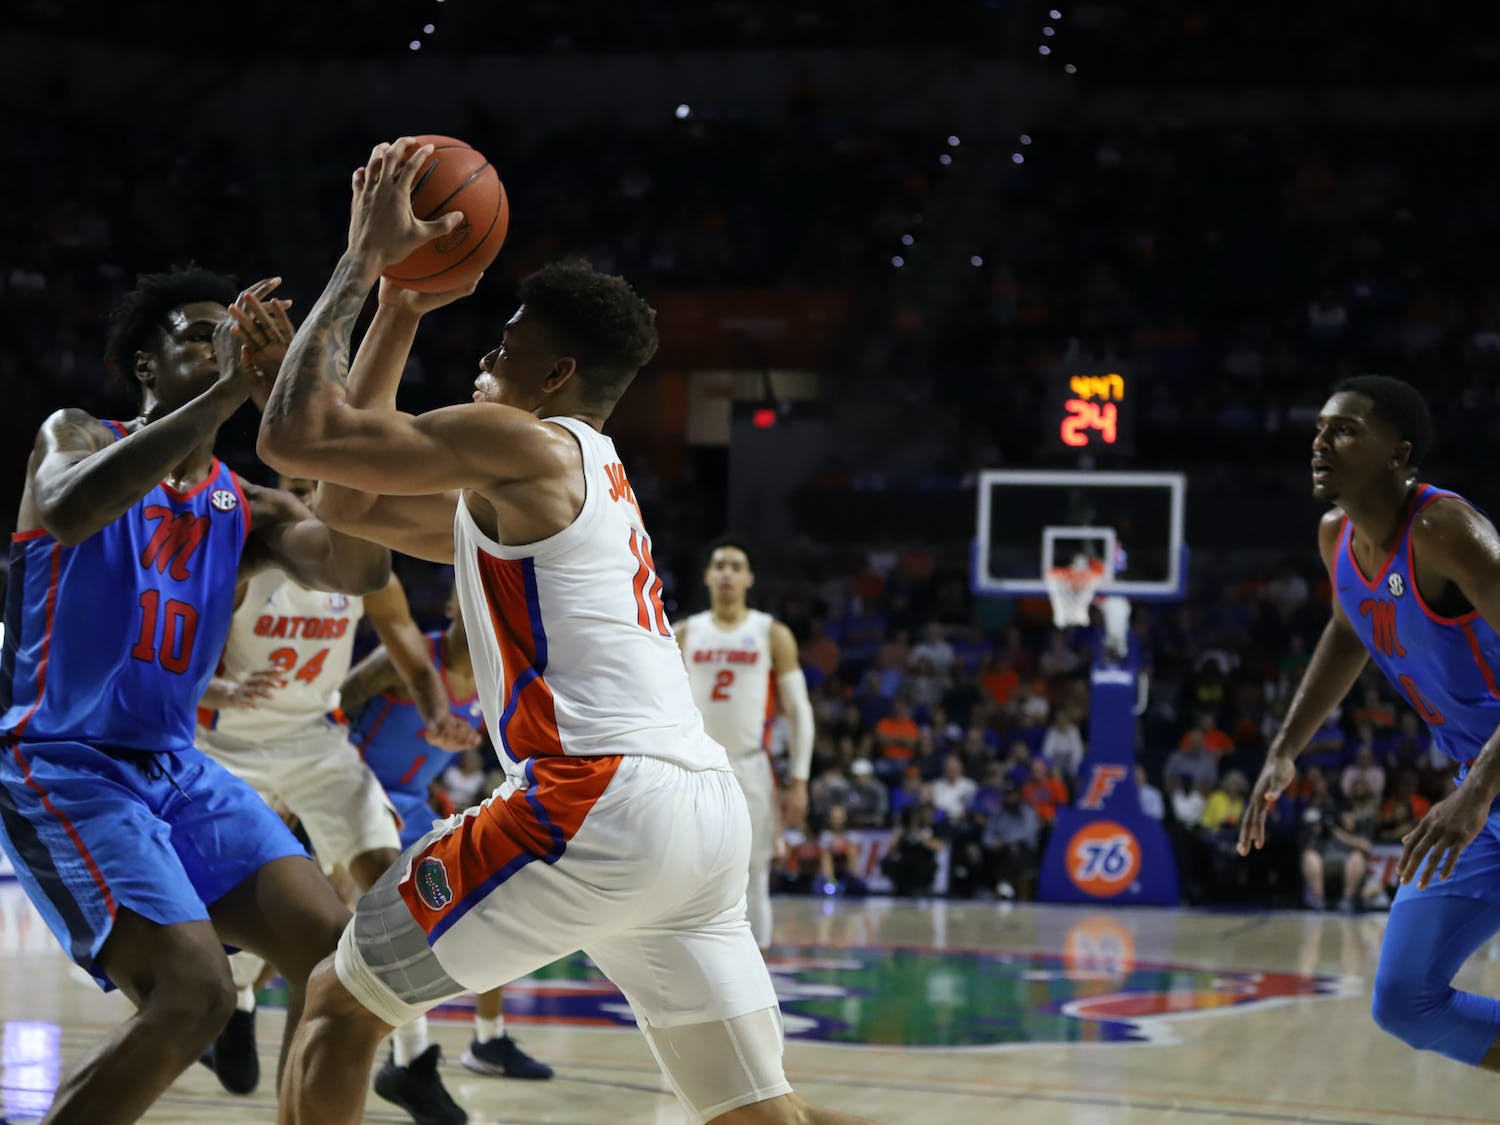 Florida is 2-0 after returning to the court following star junior forward Keyontae Johnson's collapse Dec. 12. Photo from Florida-Ole Miss game in January 2020.